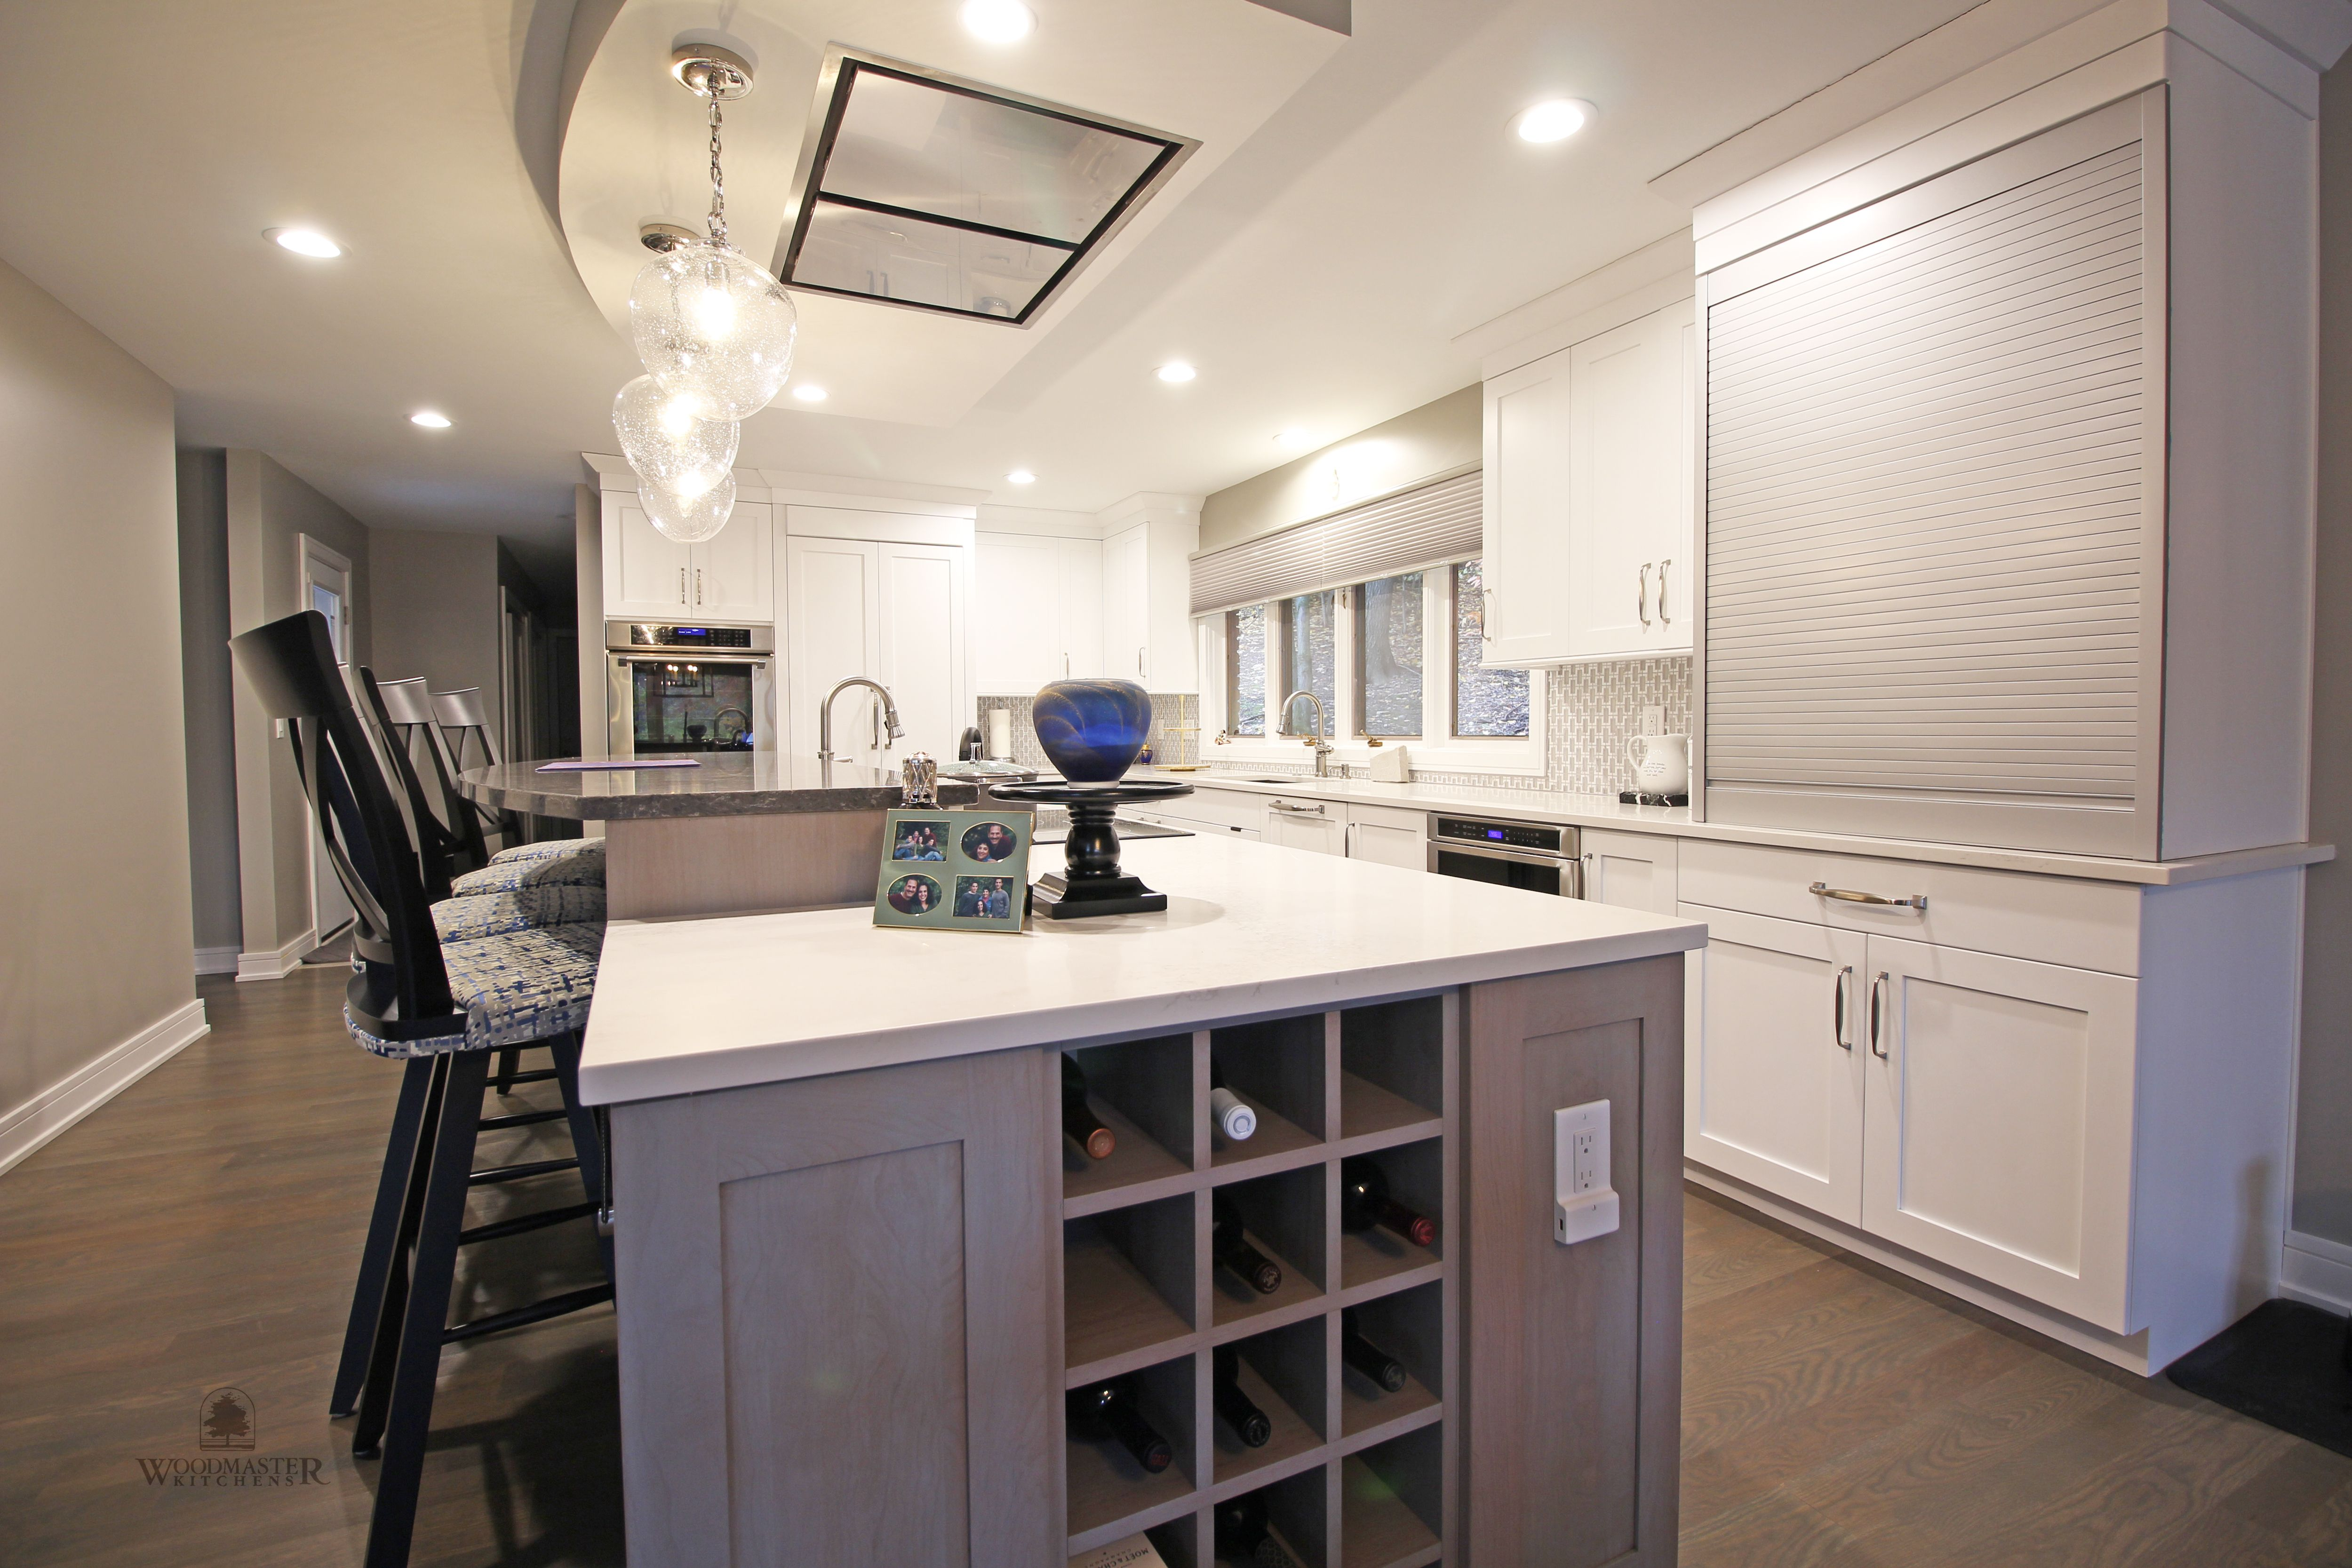 This Transitional Kitchen Design In Farmington Hills Was Done As Part Of A Home Remodeli Transitional Kitchen Design Transitional Kitchen Large Kitchen Island